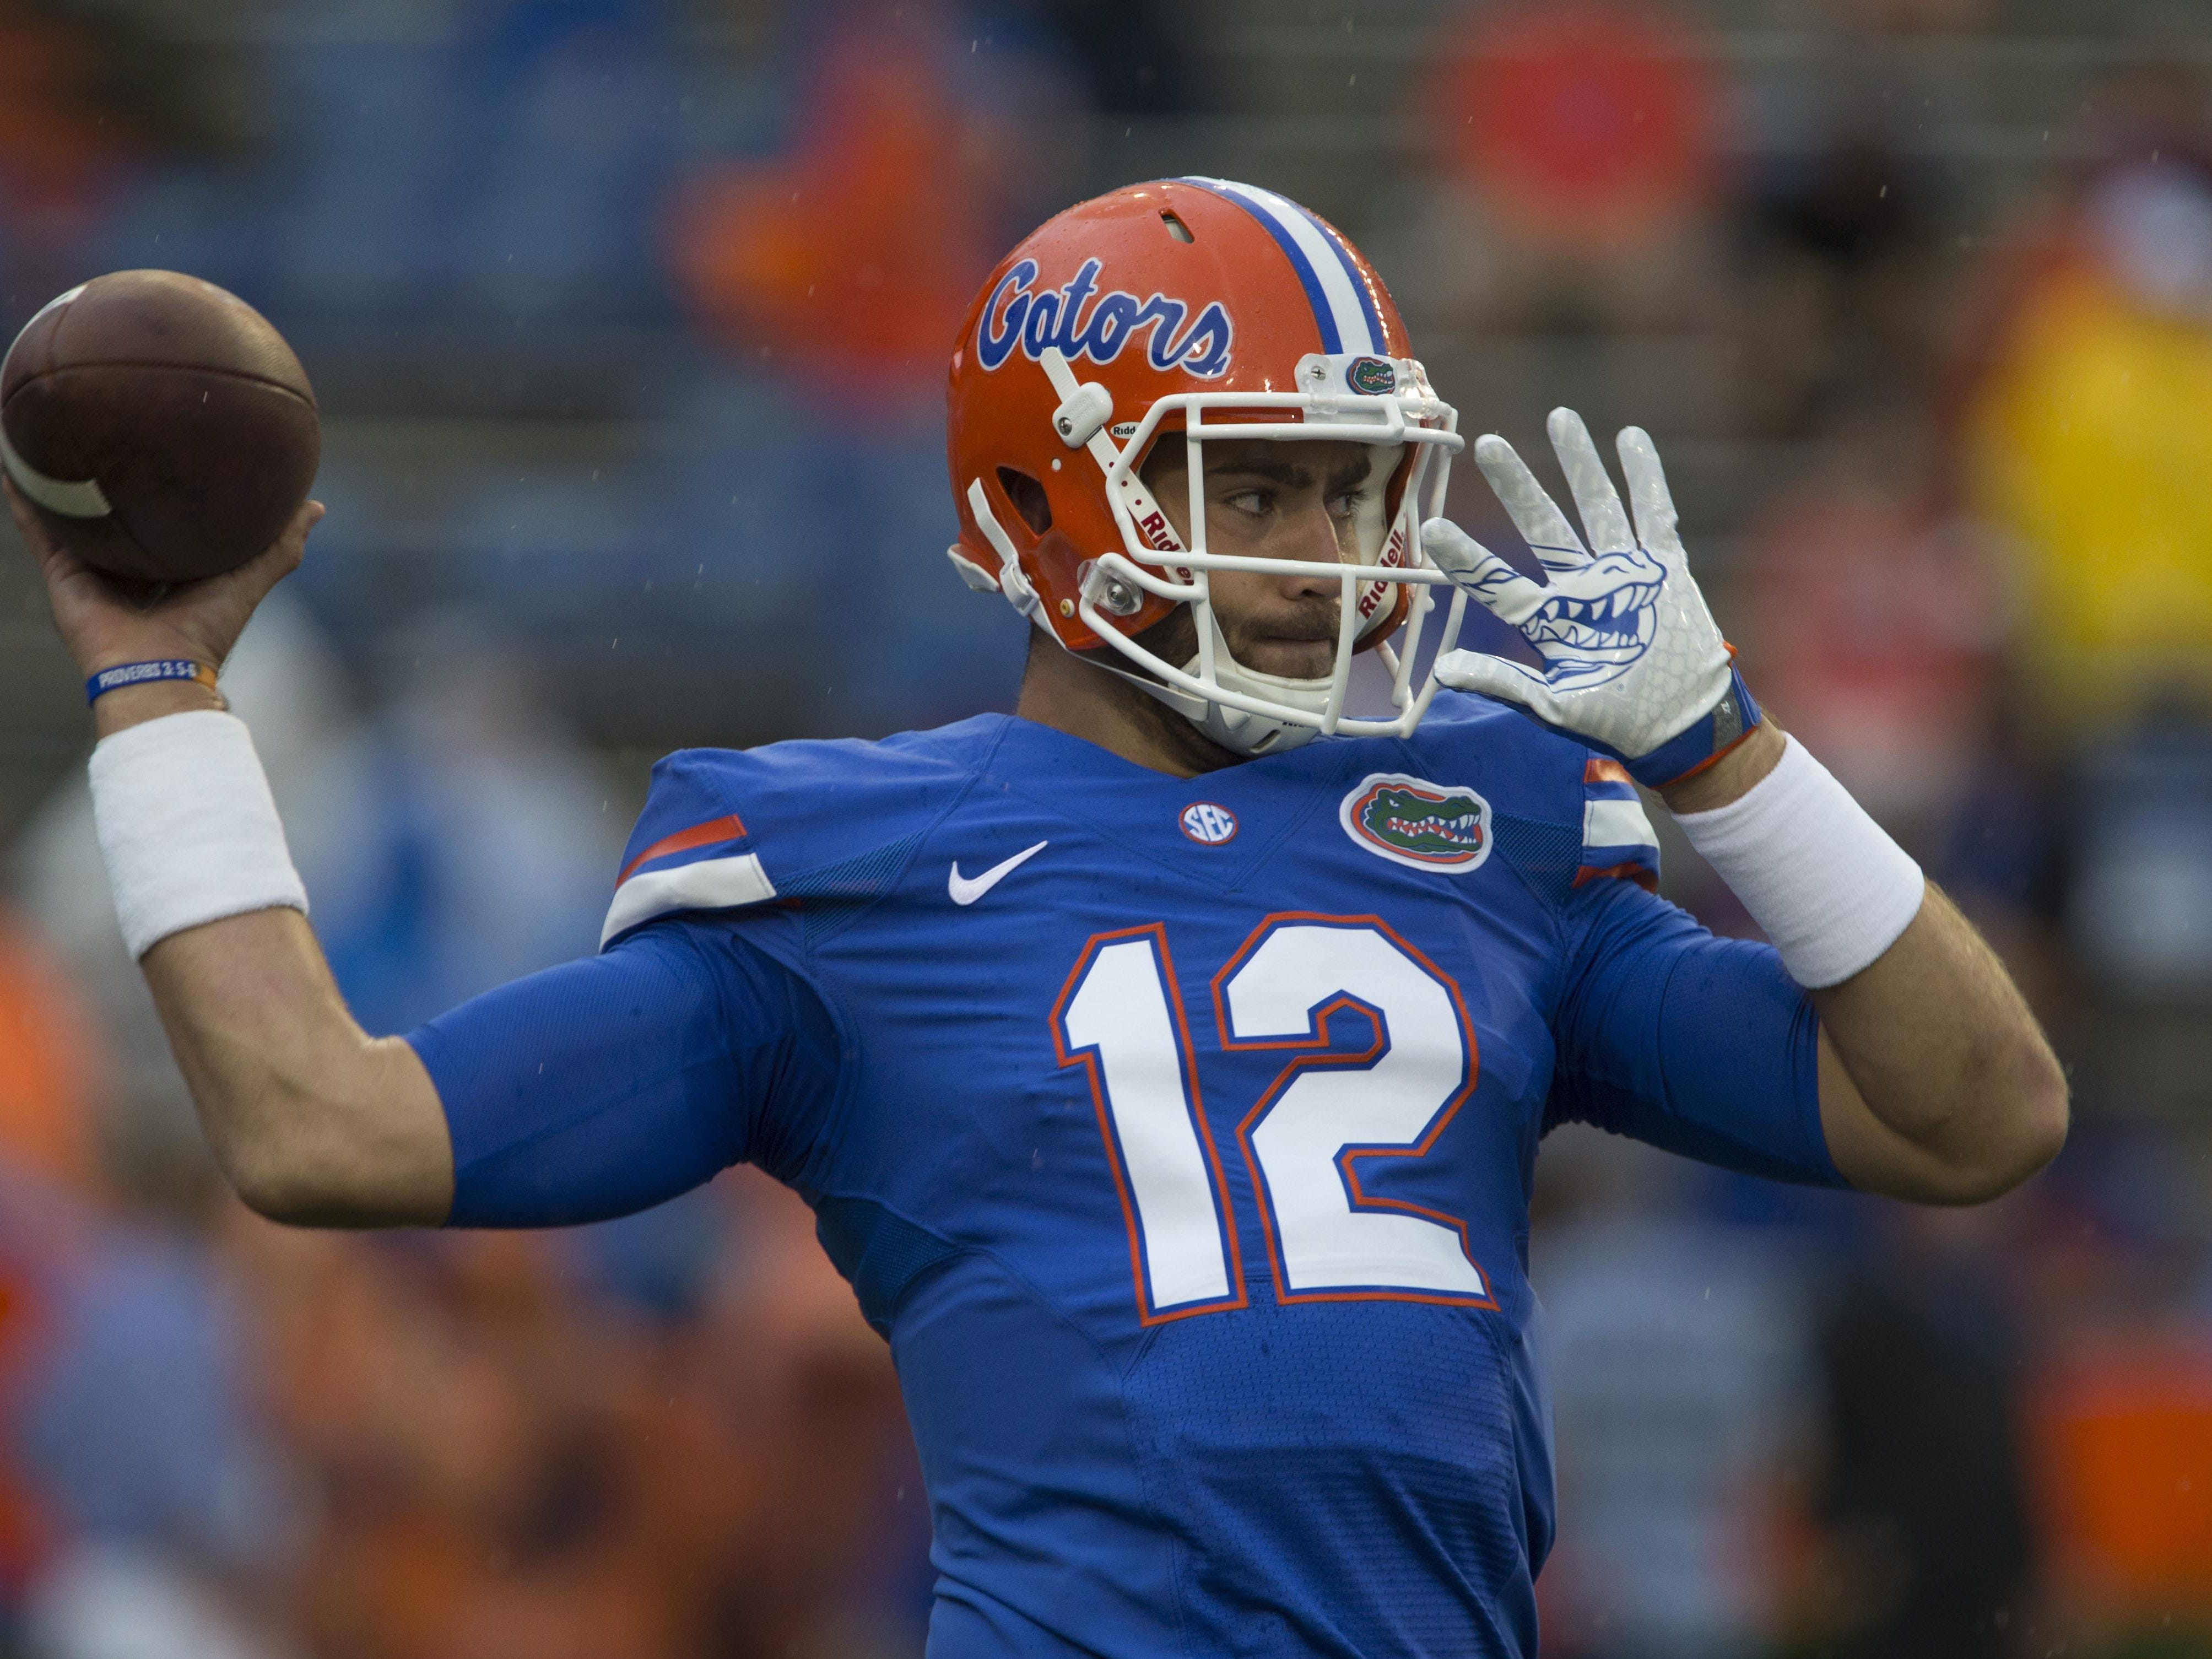 Florida quarterback Austin Appleby, seen before the Gators' game against UMass on Sept. 3, will start Saturday against Tennessee after Luke Del Rio injured his left knee against North Texas.